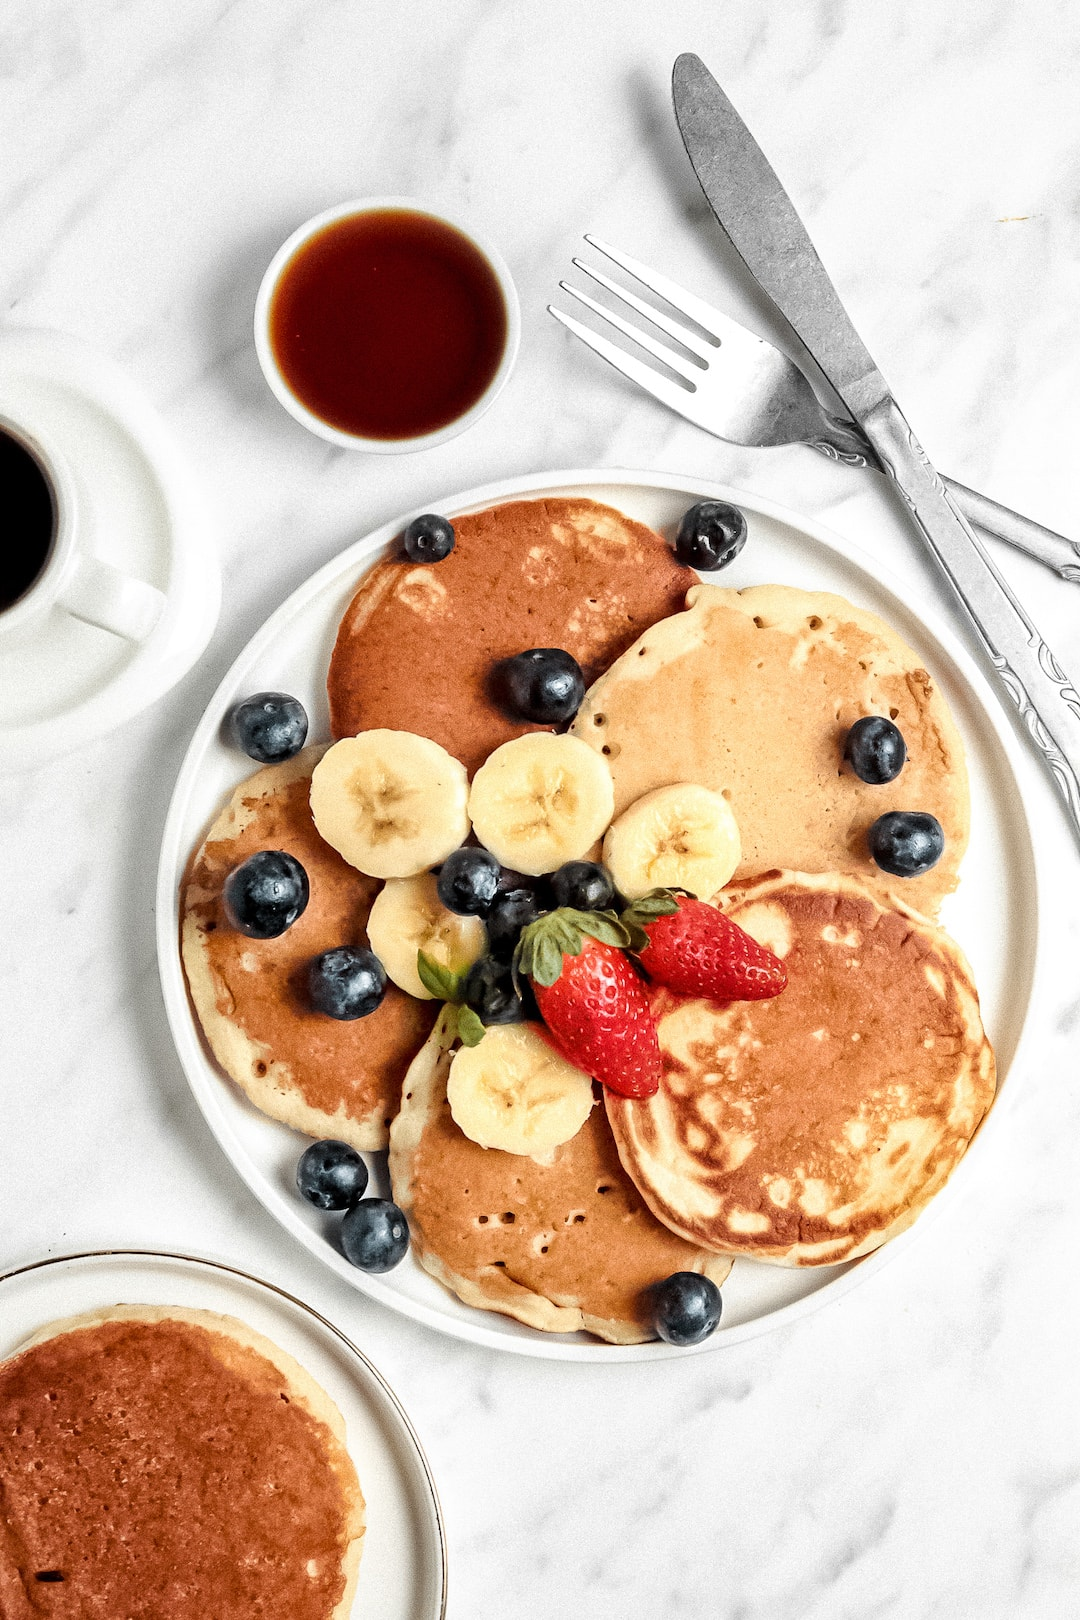 Overhead view of Healthy Cassava Flour Pancakes on a plate with strawberries and blueberries